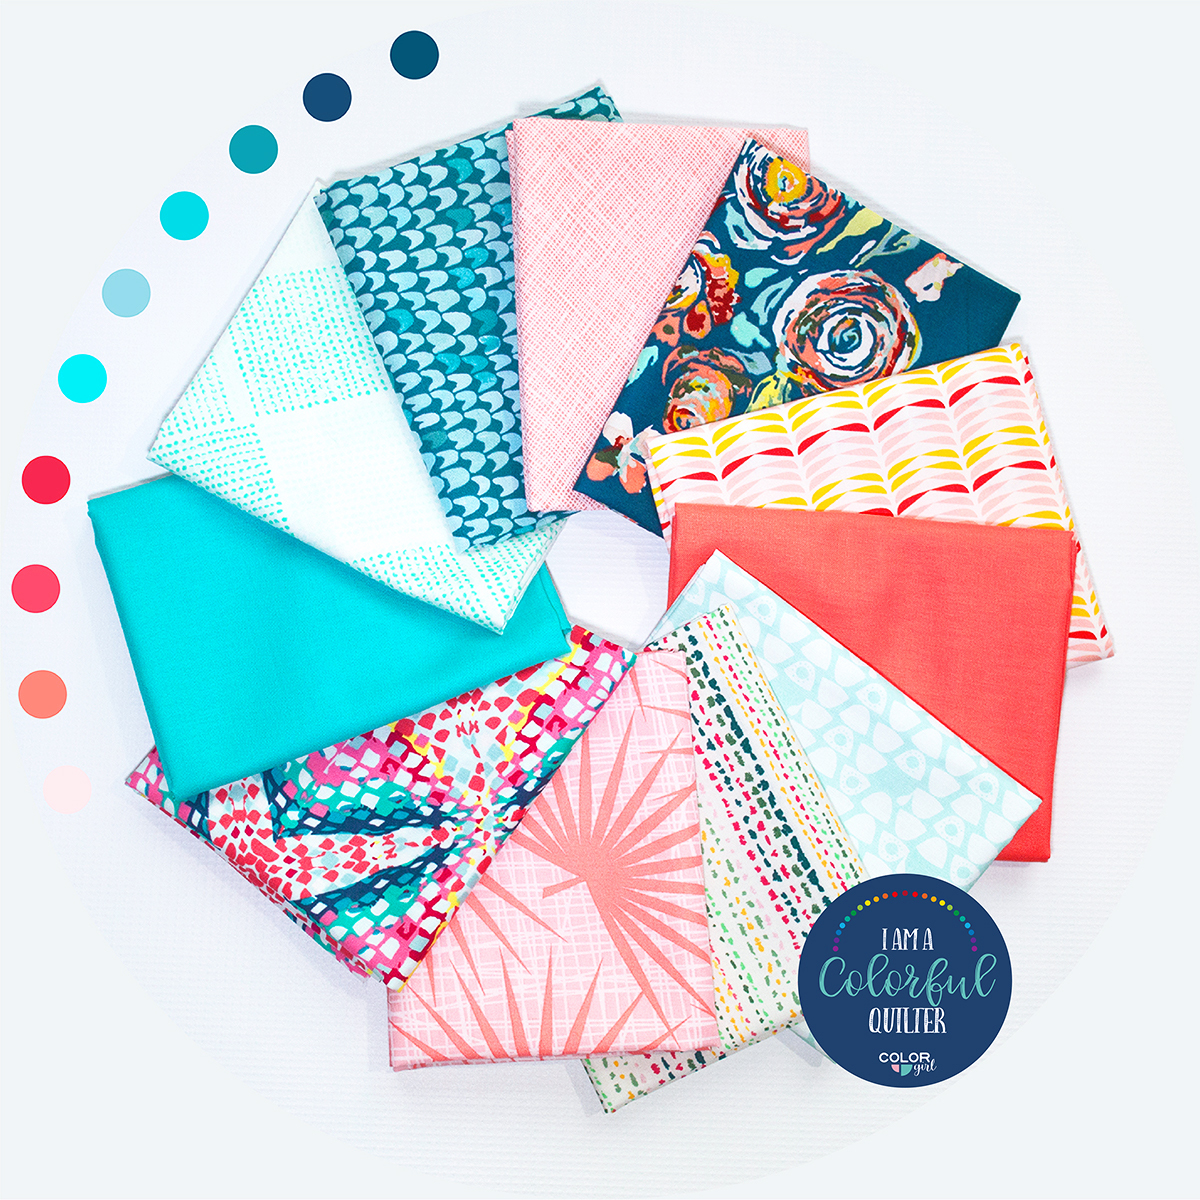 coral reef colors fabric bundle sold by Color Girl Quilts